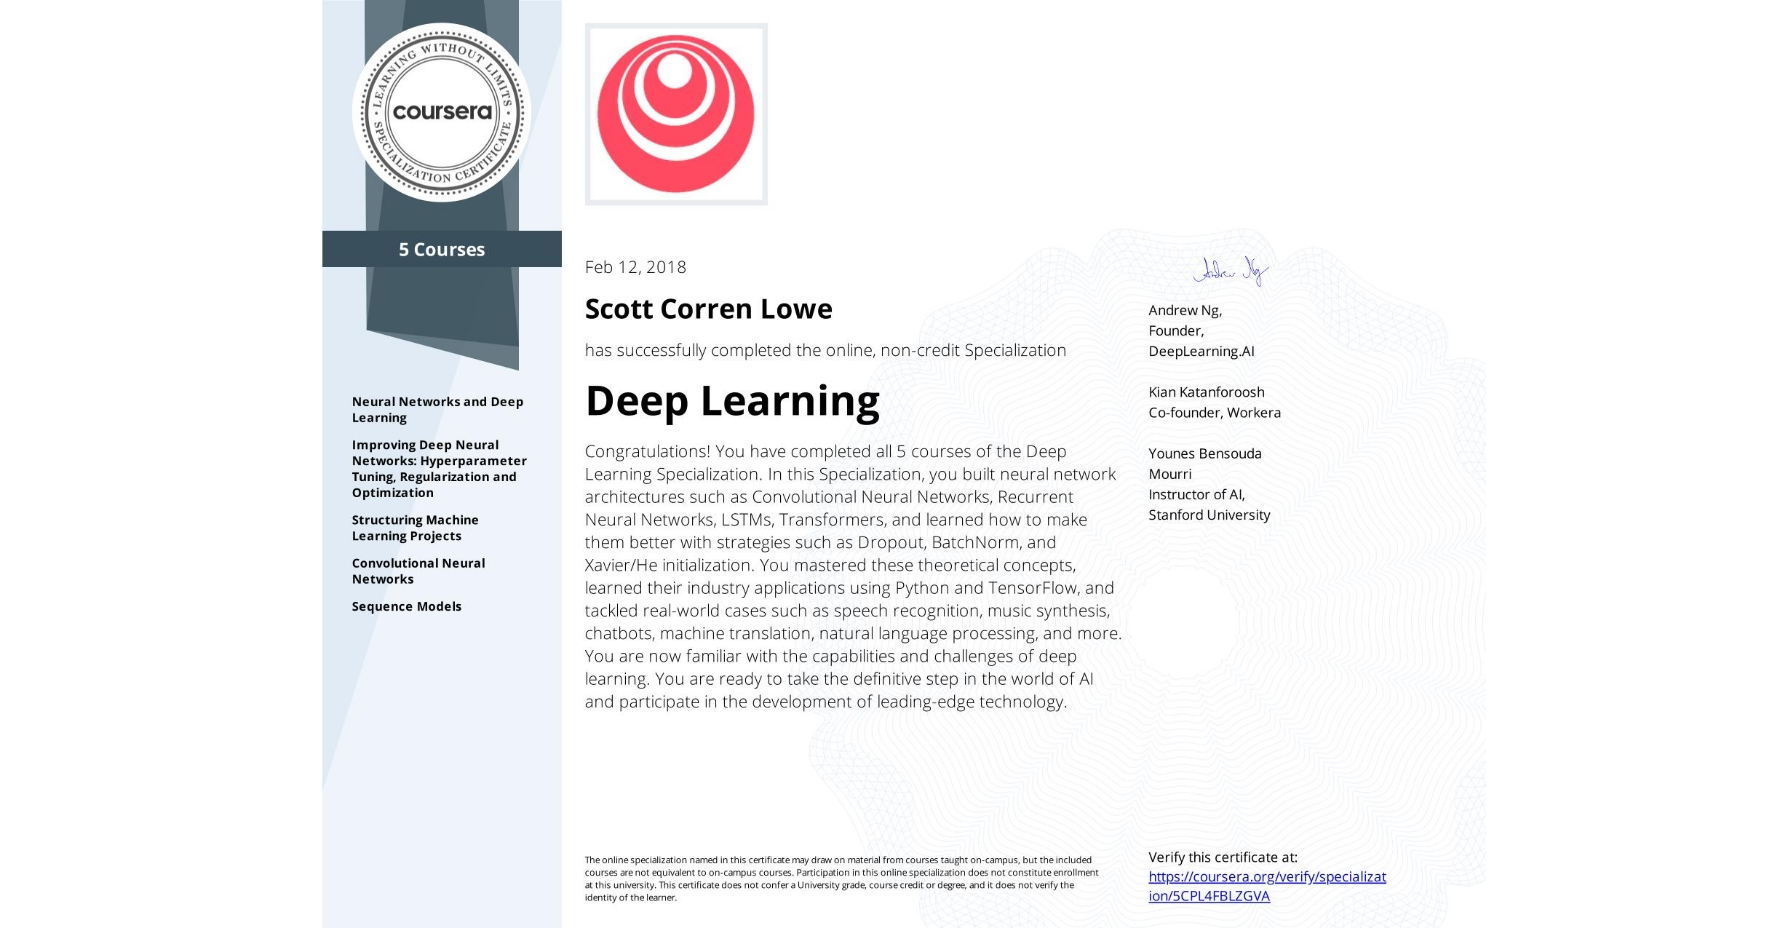 View certificate for Scott Corren Lowe, Deep Learning, offered through Coursera. Congratulations! You have completed all 5 courses of the Deep Learning Specialization.  In this Specialization, you built neural network architectures such as Convolutional Neural Networks, Recurrent Neural Networks, LSTMs, Transformers, and learned how to make them better with strategies such as Dropout, BatchNorm, and Xavier/He initialization. You mastered these theoretical concepts, learned their industry applications using Python and TensorFlow, and tackled real-world cases such as speech recognition, music synthesis, chatbots, machine translation, natural language processing, and more.  You are now familiar with the capabilities and challenges of deep learning. You are ready to take the definitive step in the world of AI and participate in the development of leading-edge technology.